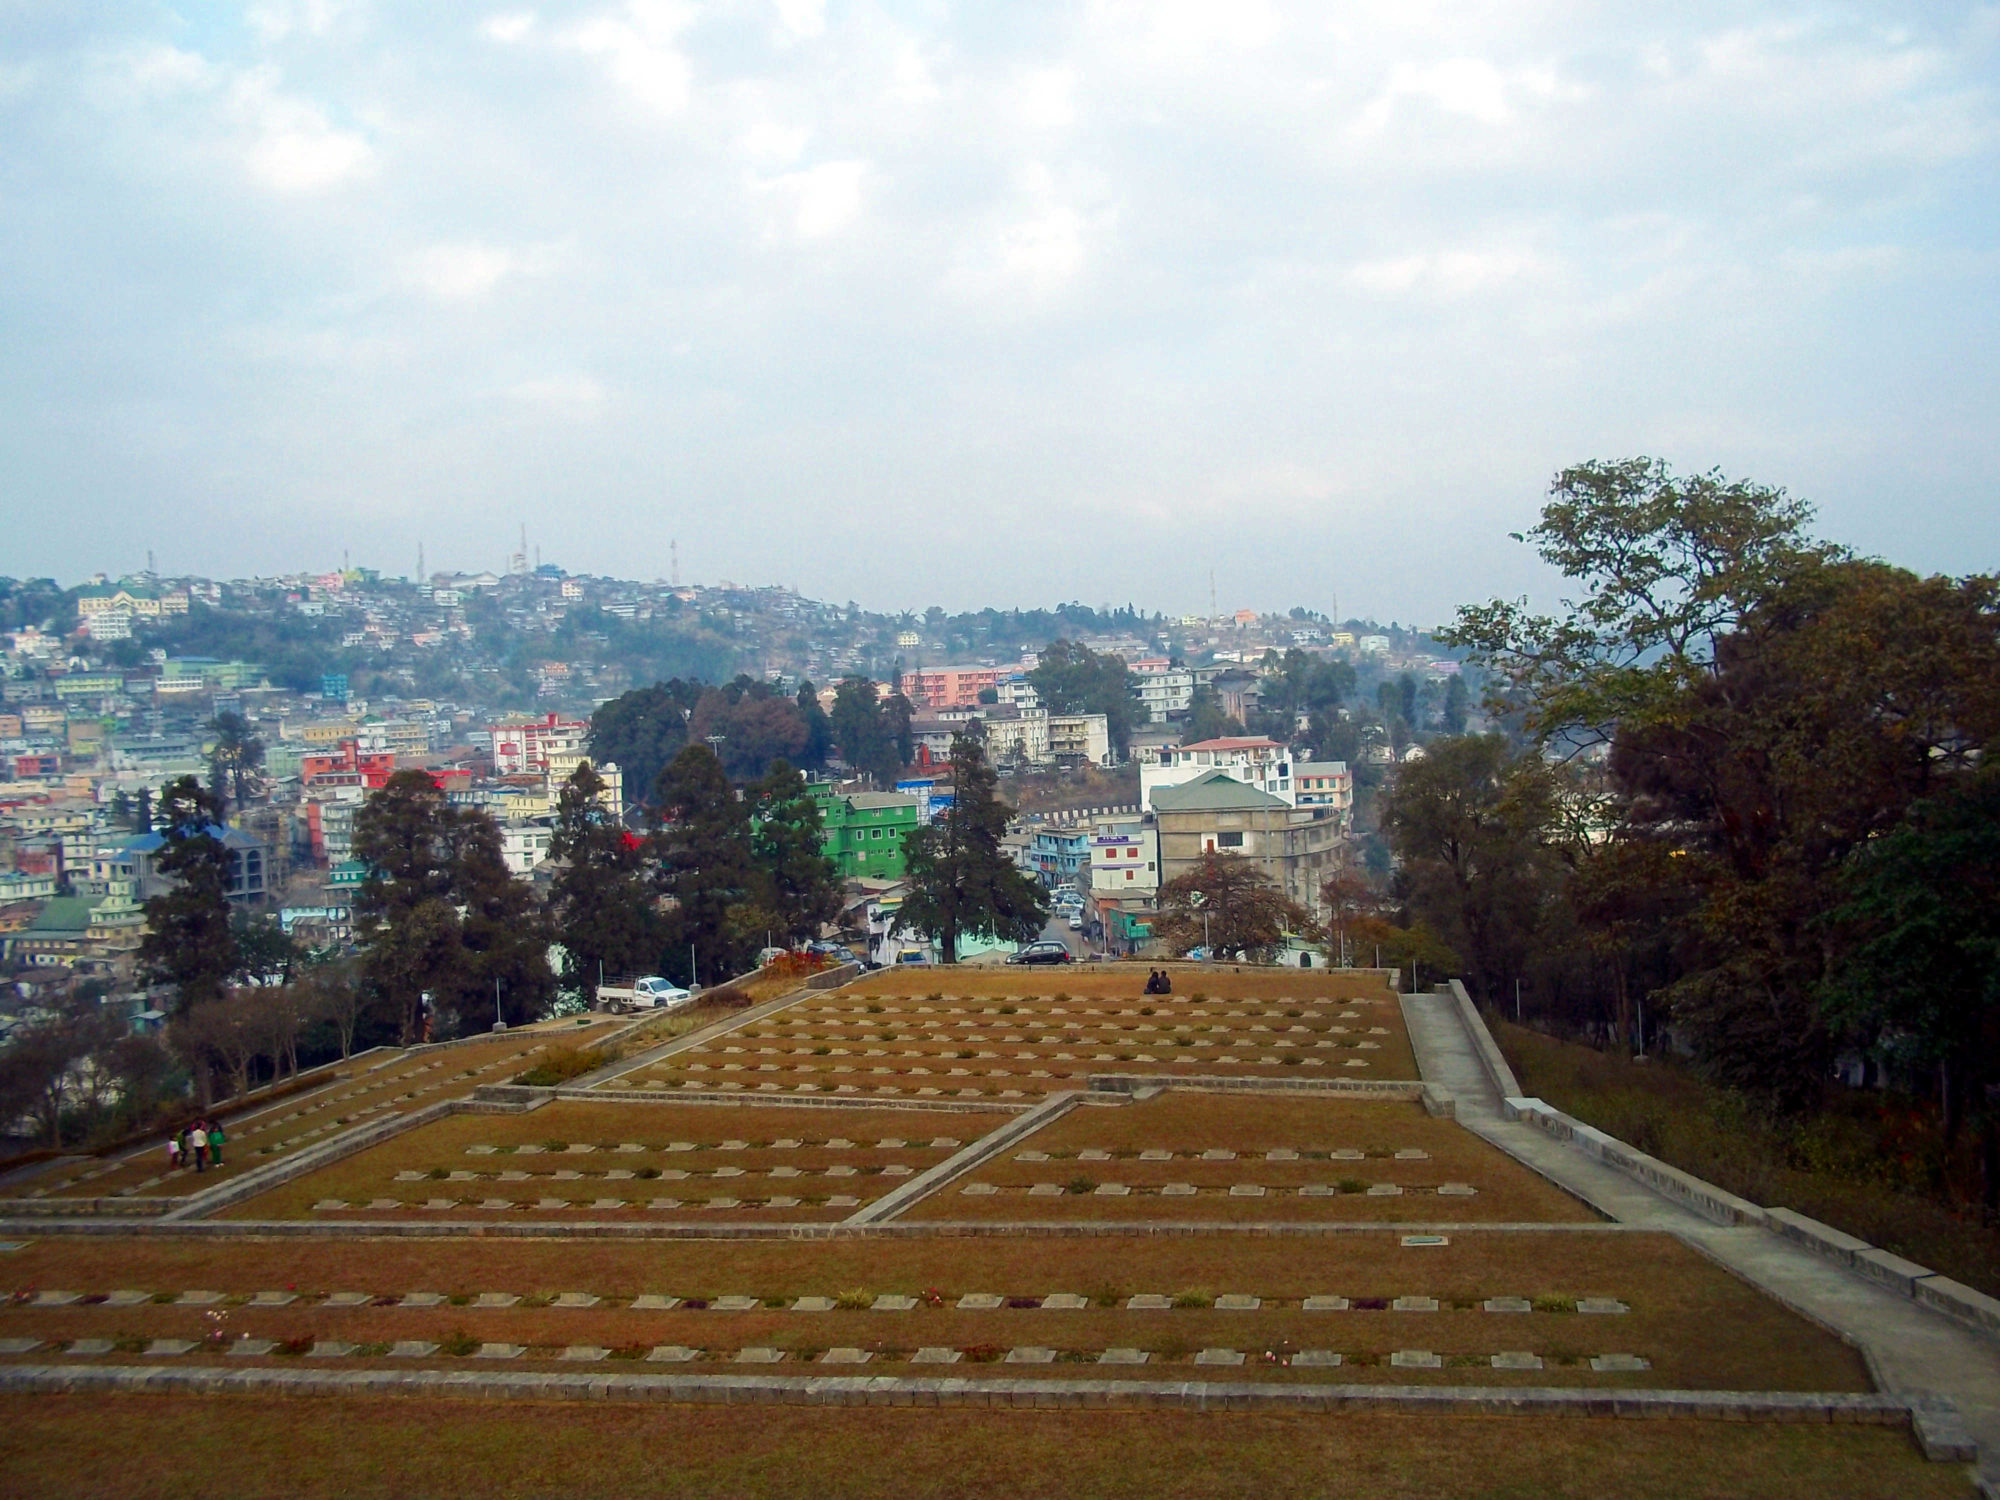 What are some quick facts about WWII Cemetery in Kohima, Nagaland in northeast India?